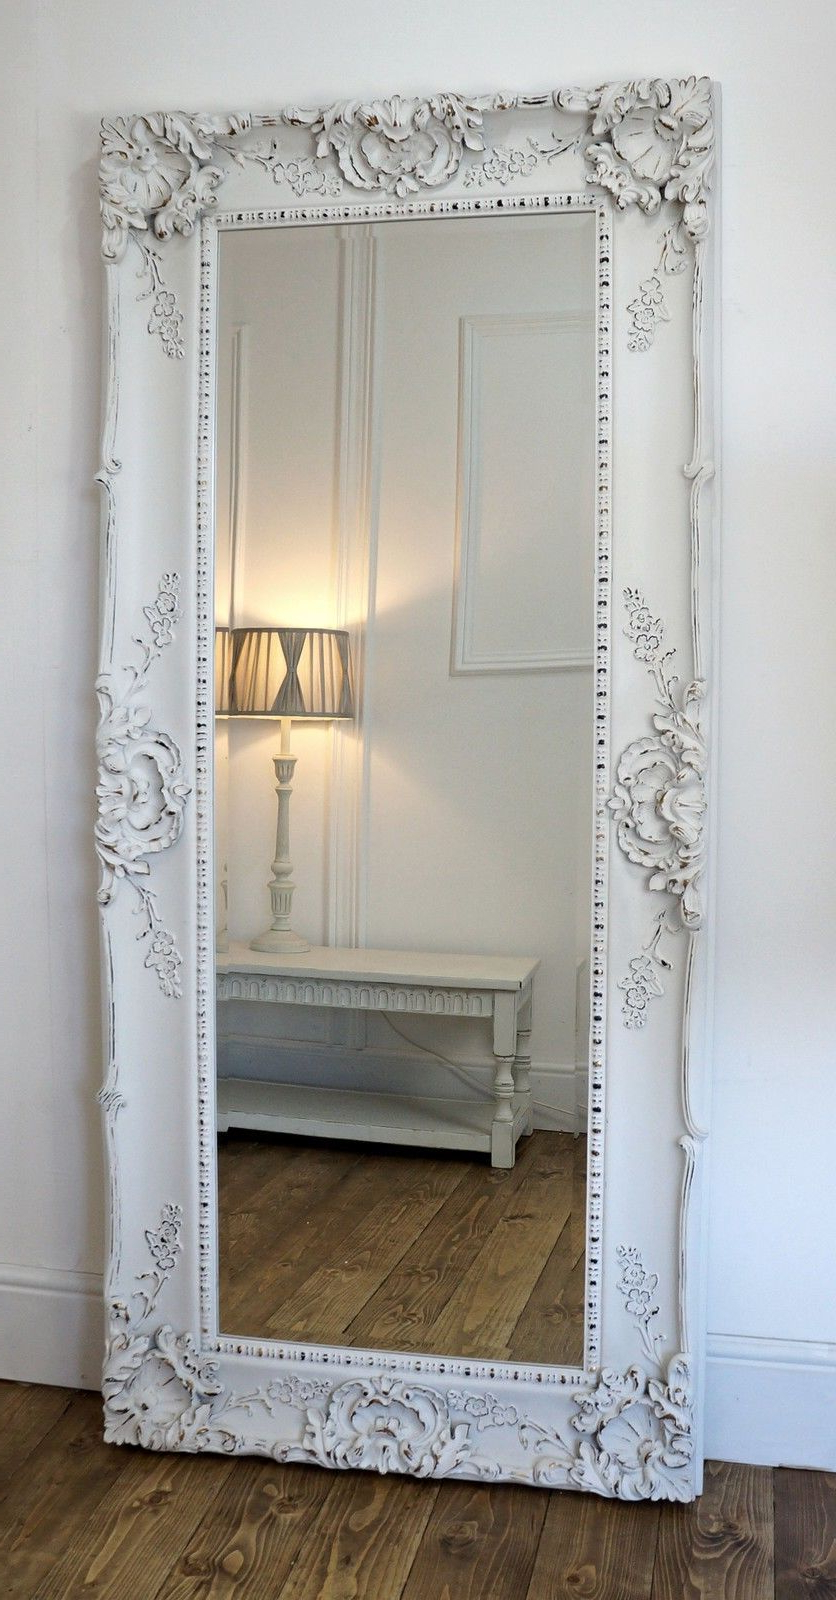 Long White Wall Mirrors Throughout Popular Wunderbar White Wall Mirrors Large Vanities Magnifying Cust (View 13 of 20)